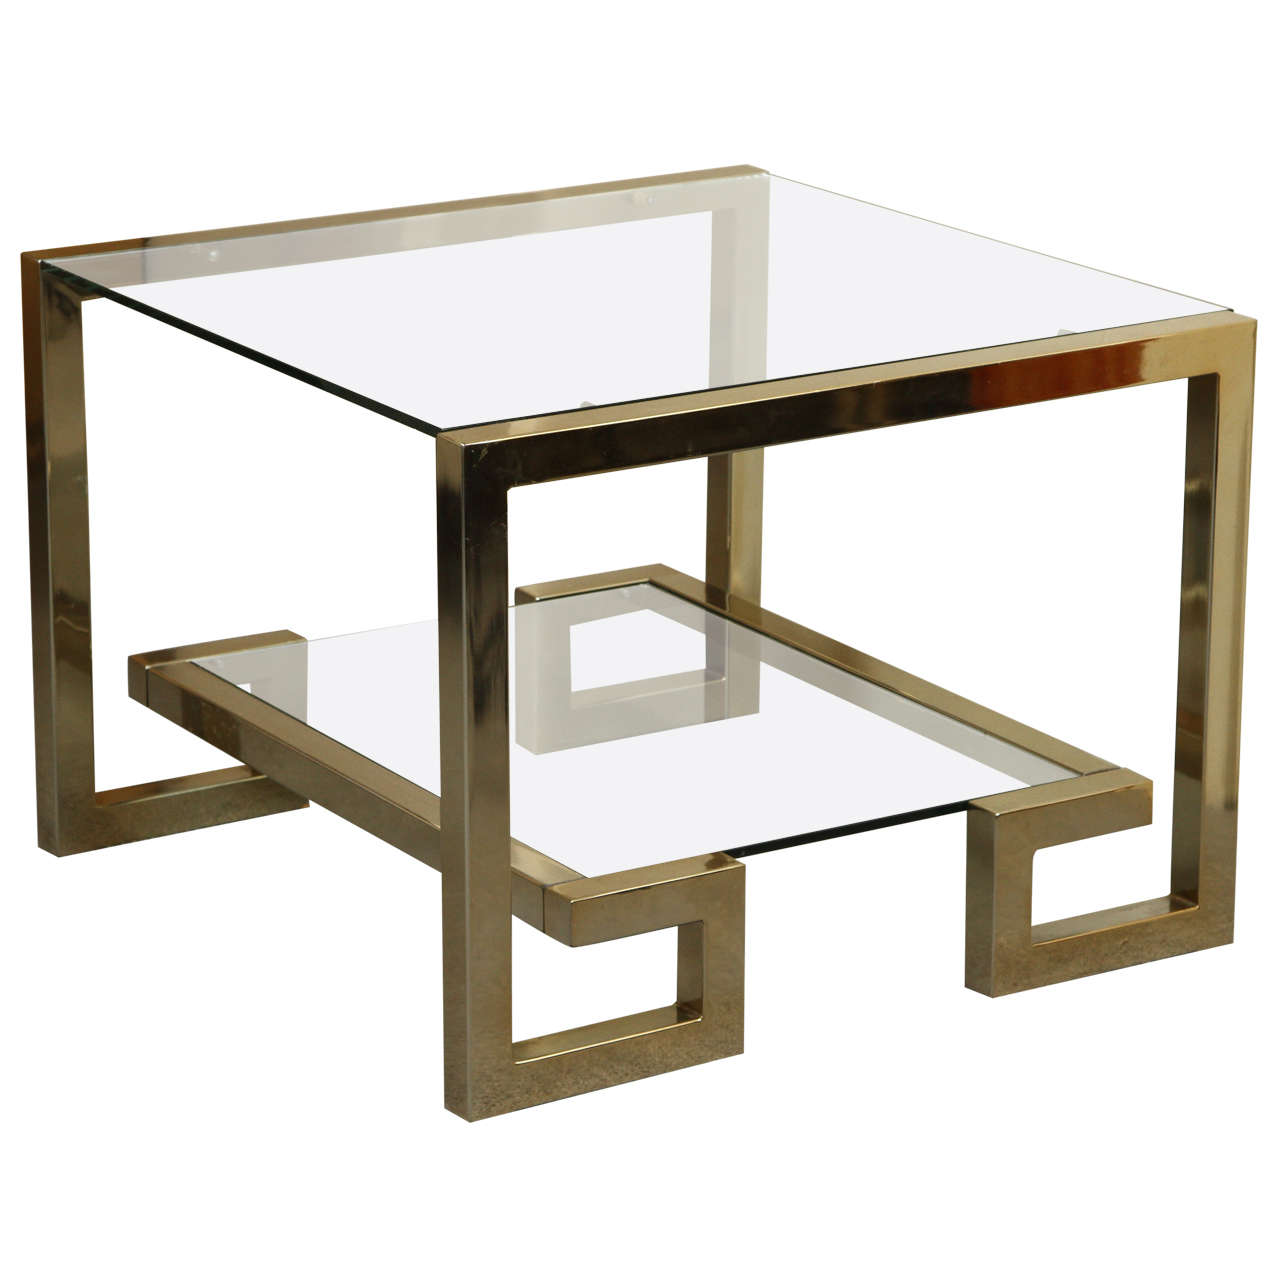 Stylish Greek Key Br And Gl Coffee Table